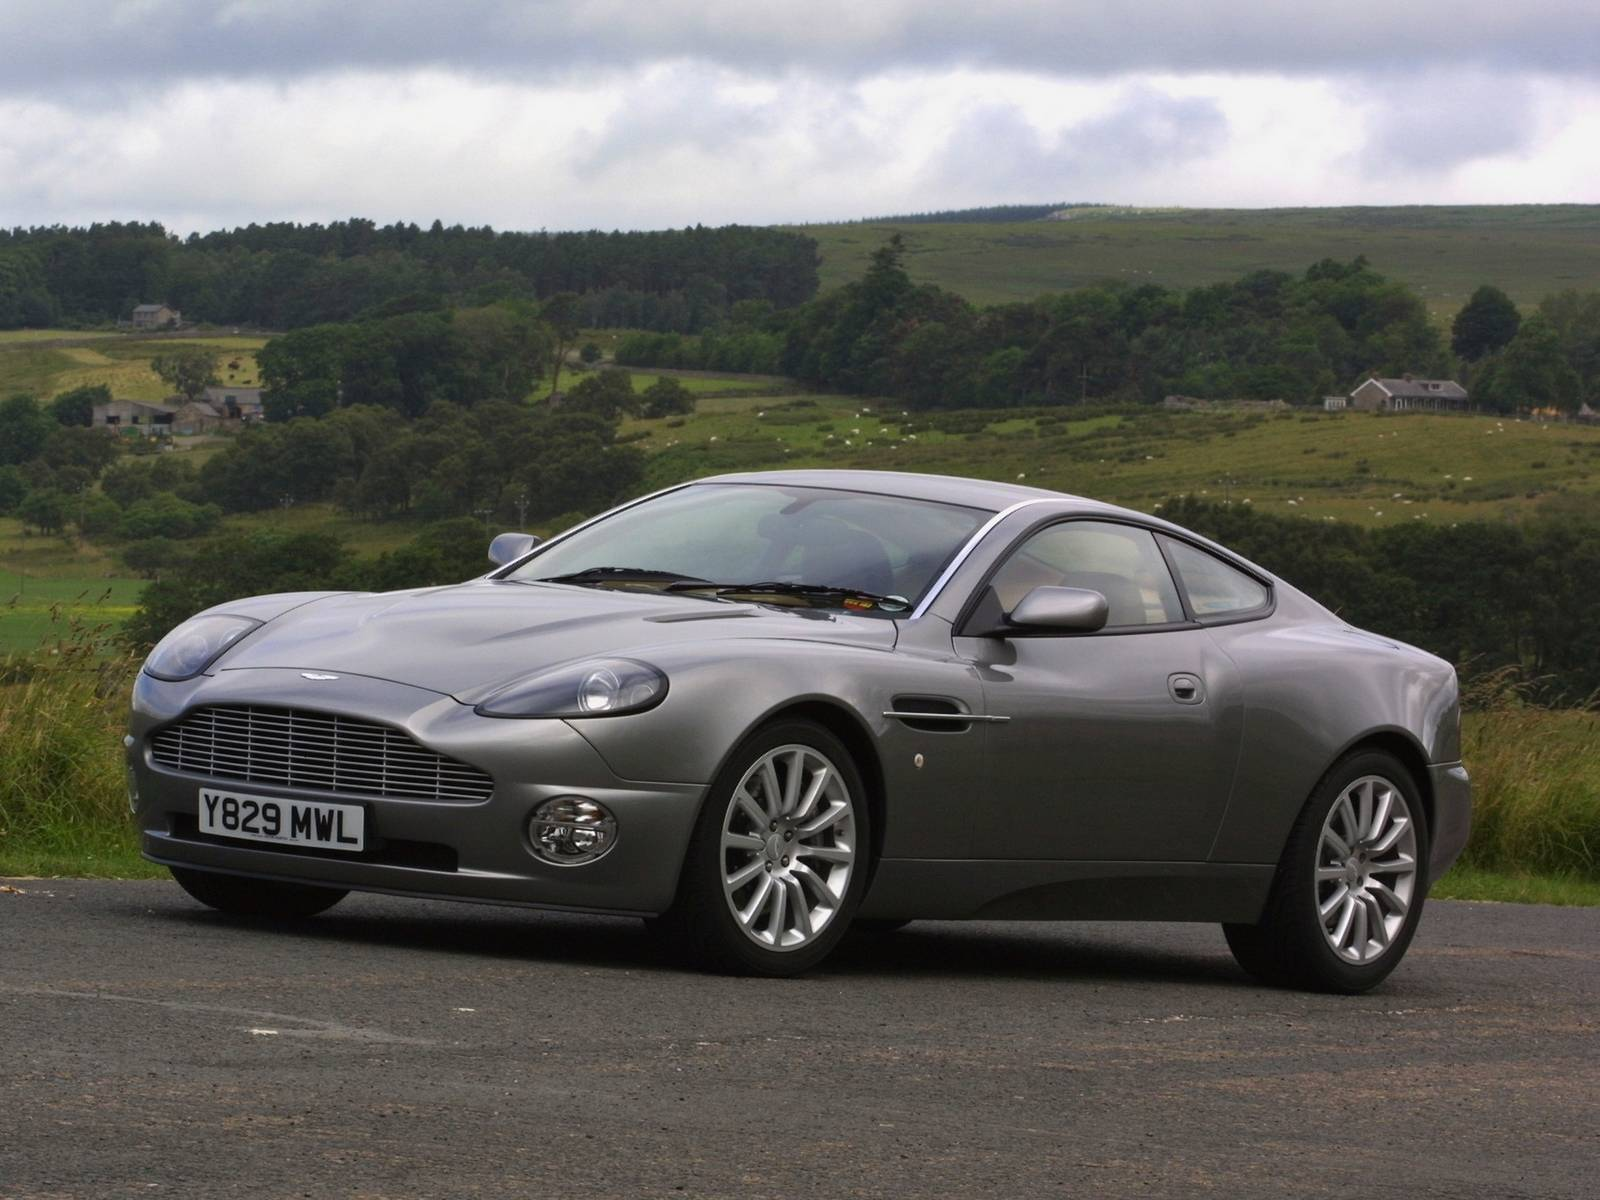 2001 Aston Martin Vanquish Wallpapers hd